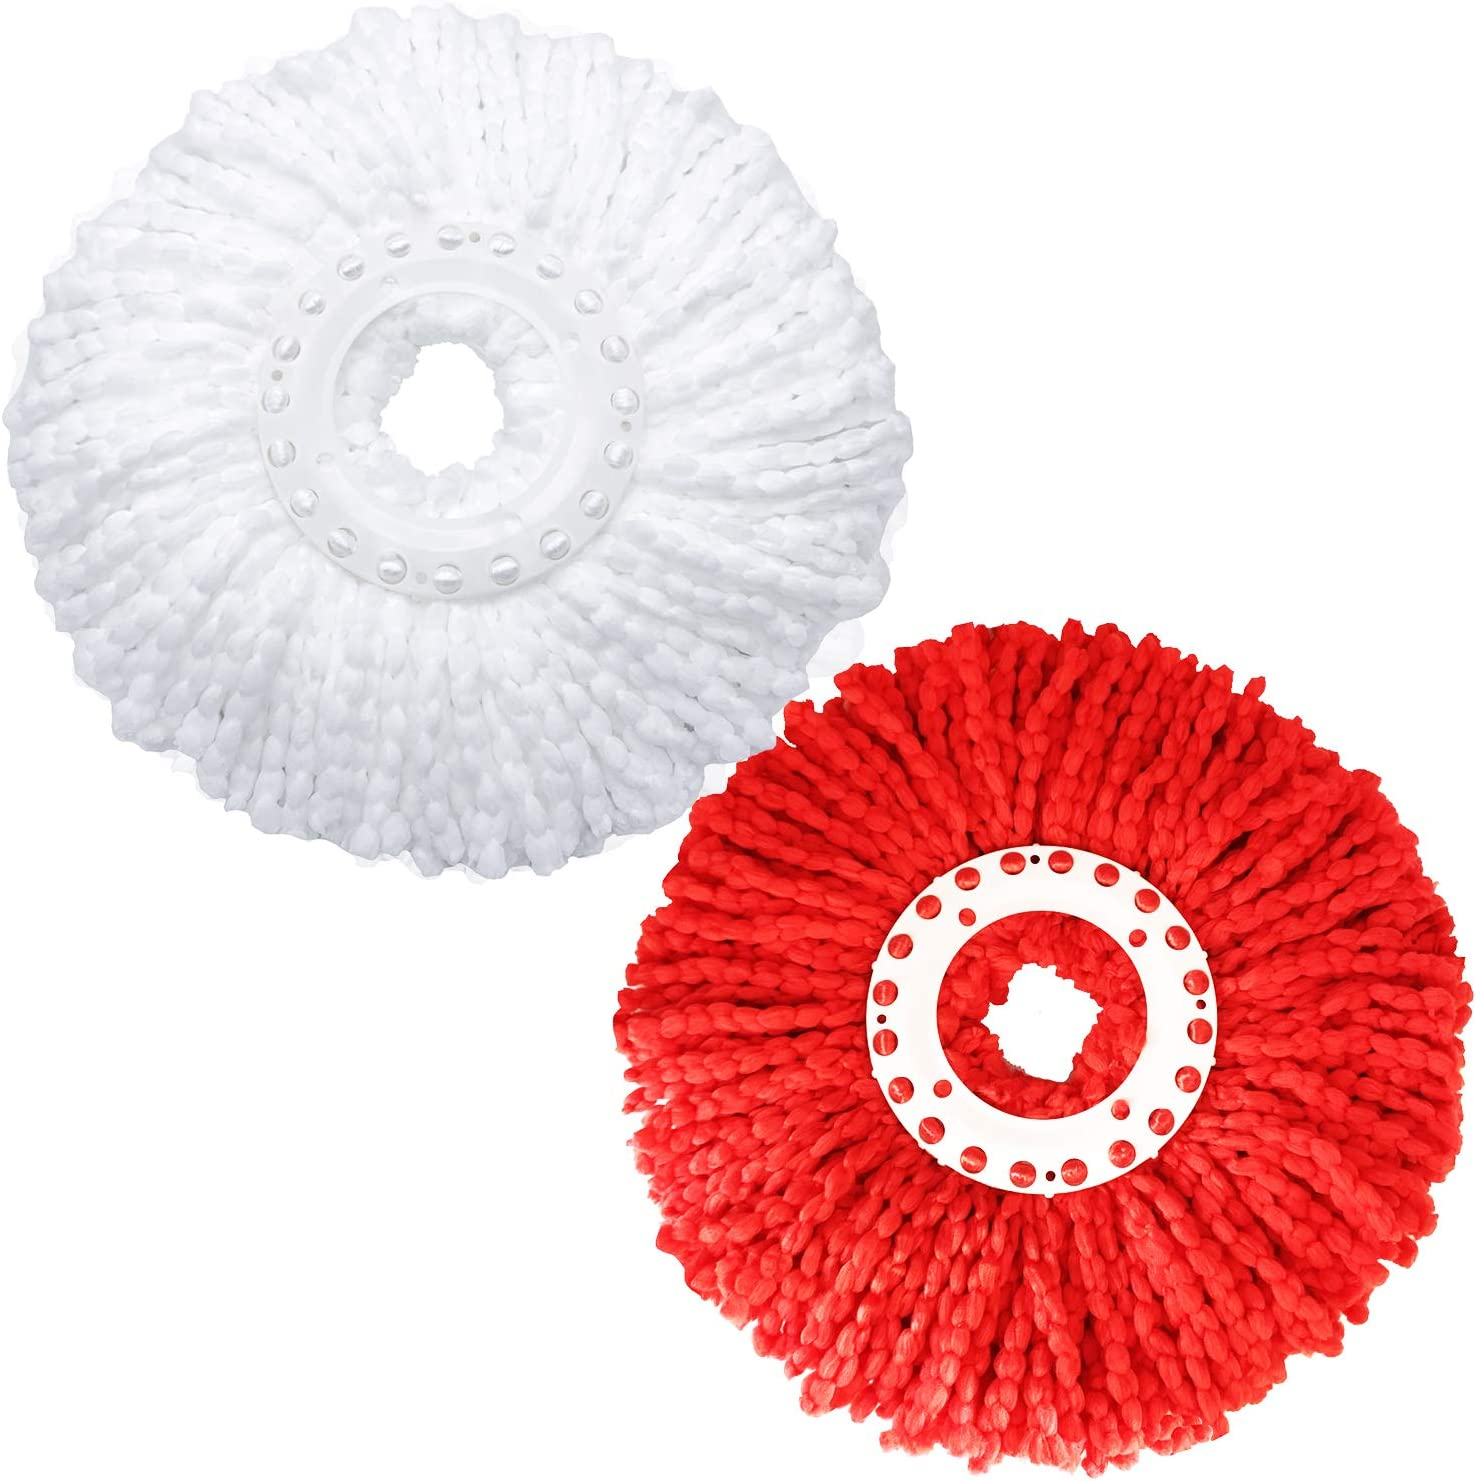 LEMNUY Spin Mop Heads Replacement Refills 2 Pack Microfiber Cotton White and Red